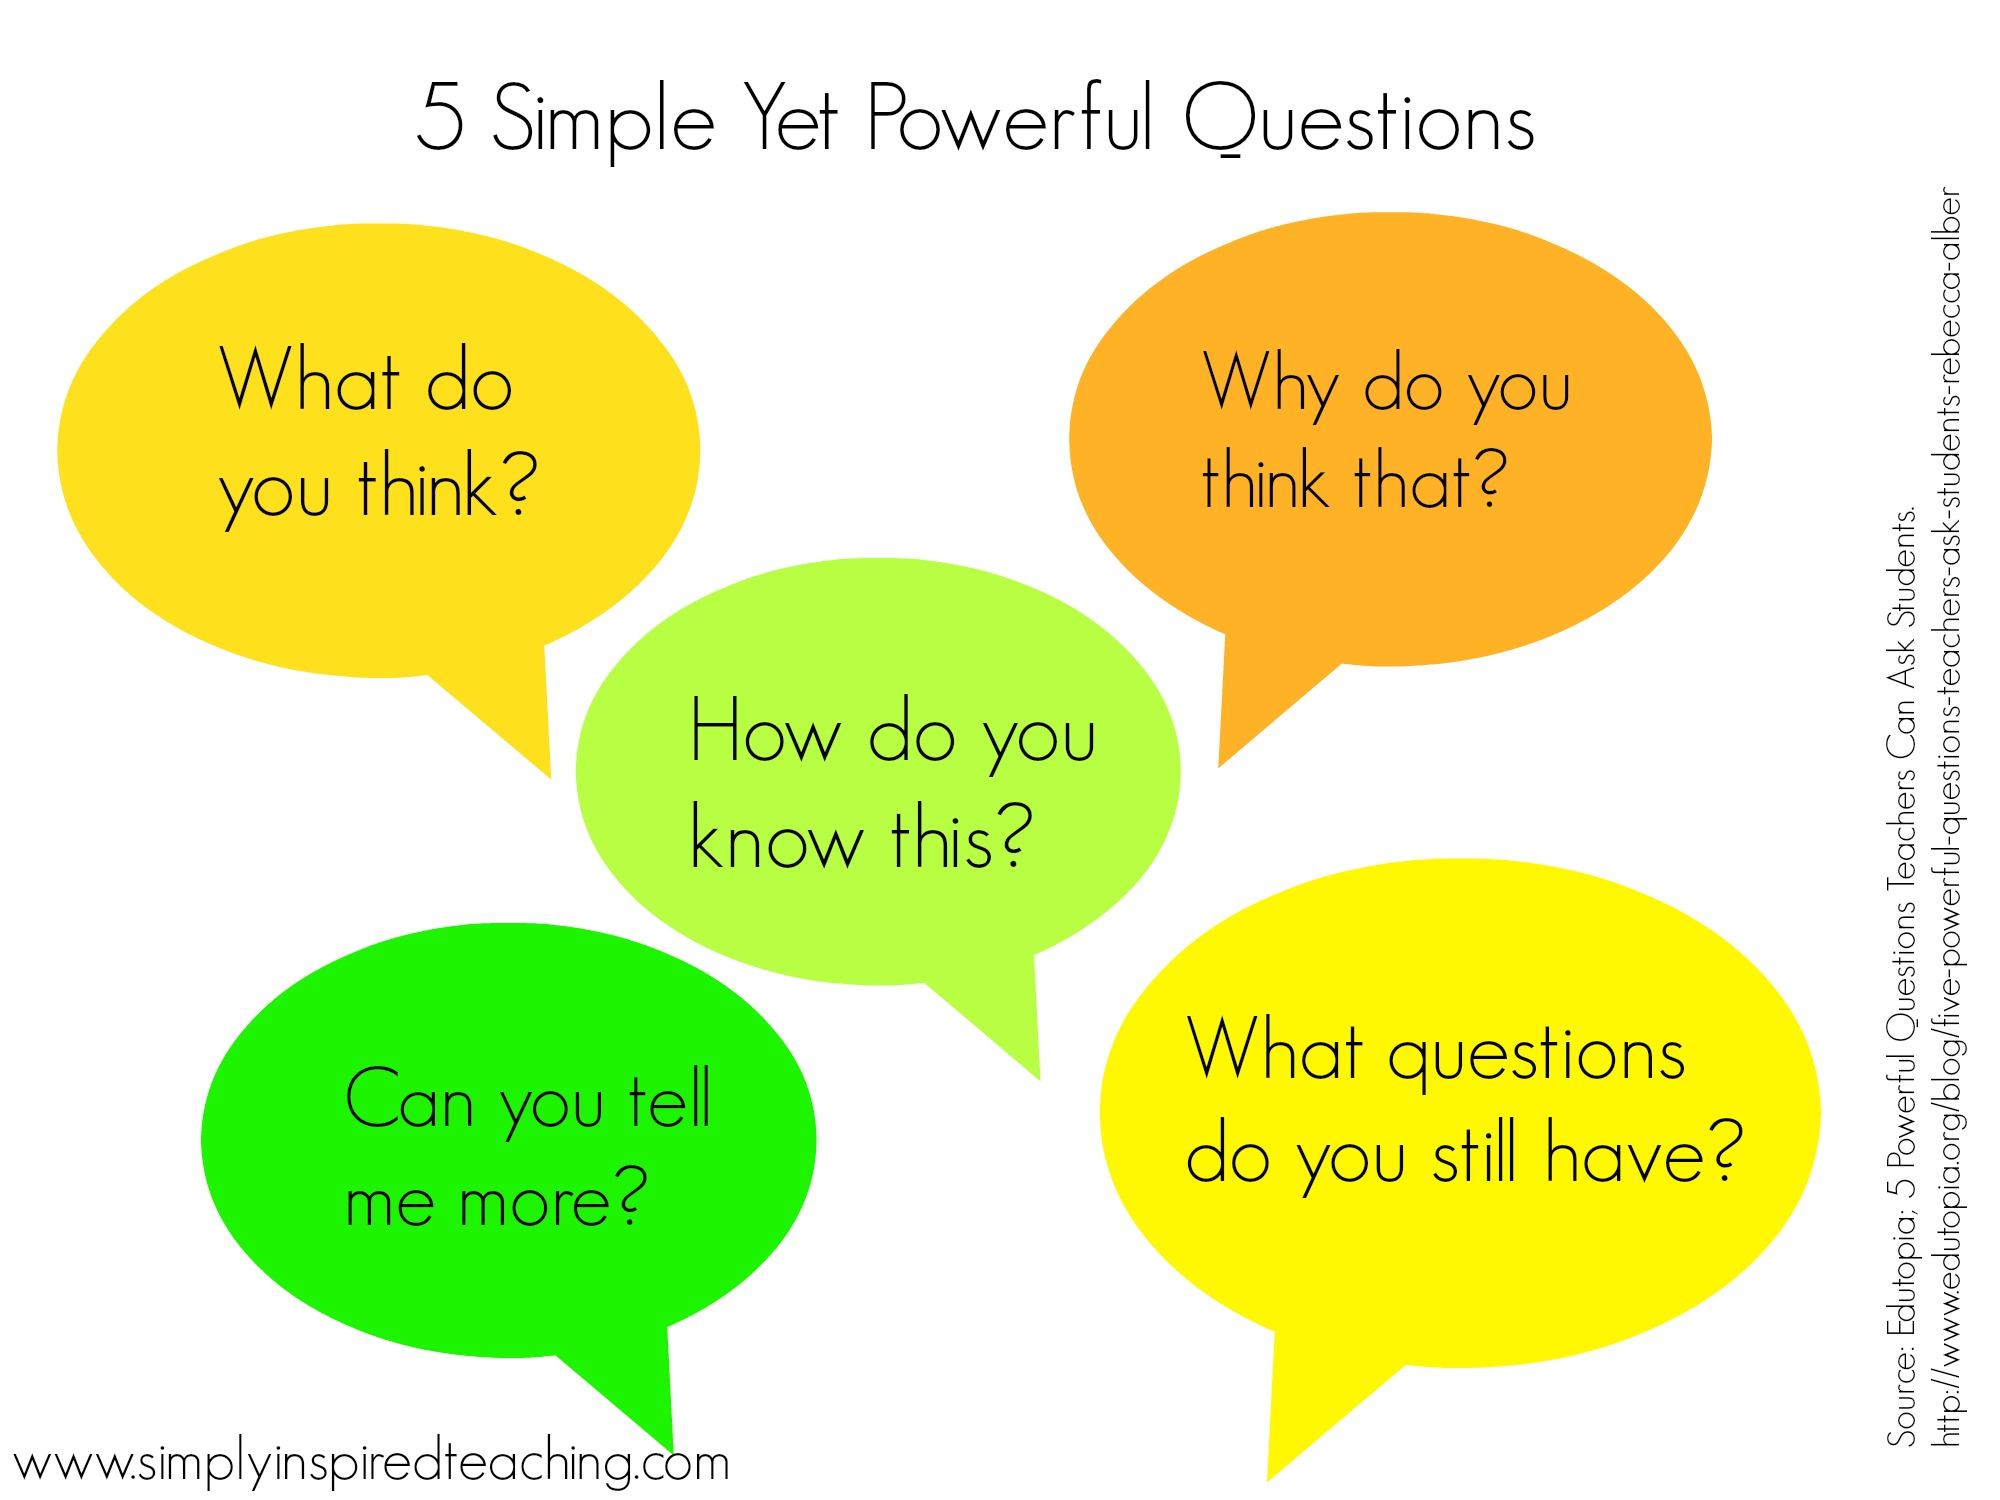 5 Simple But Powerful Questions For Any Content Area